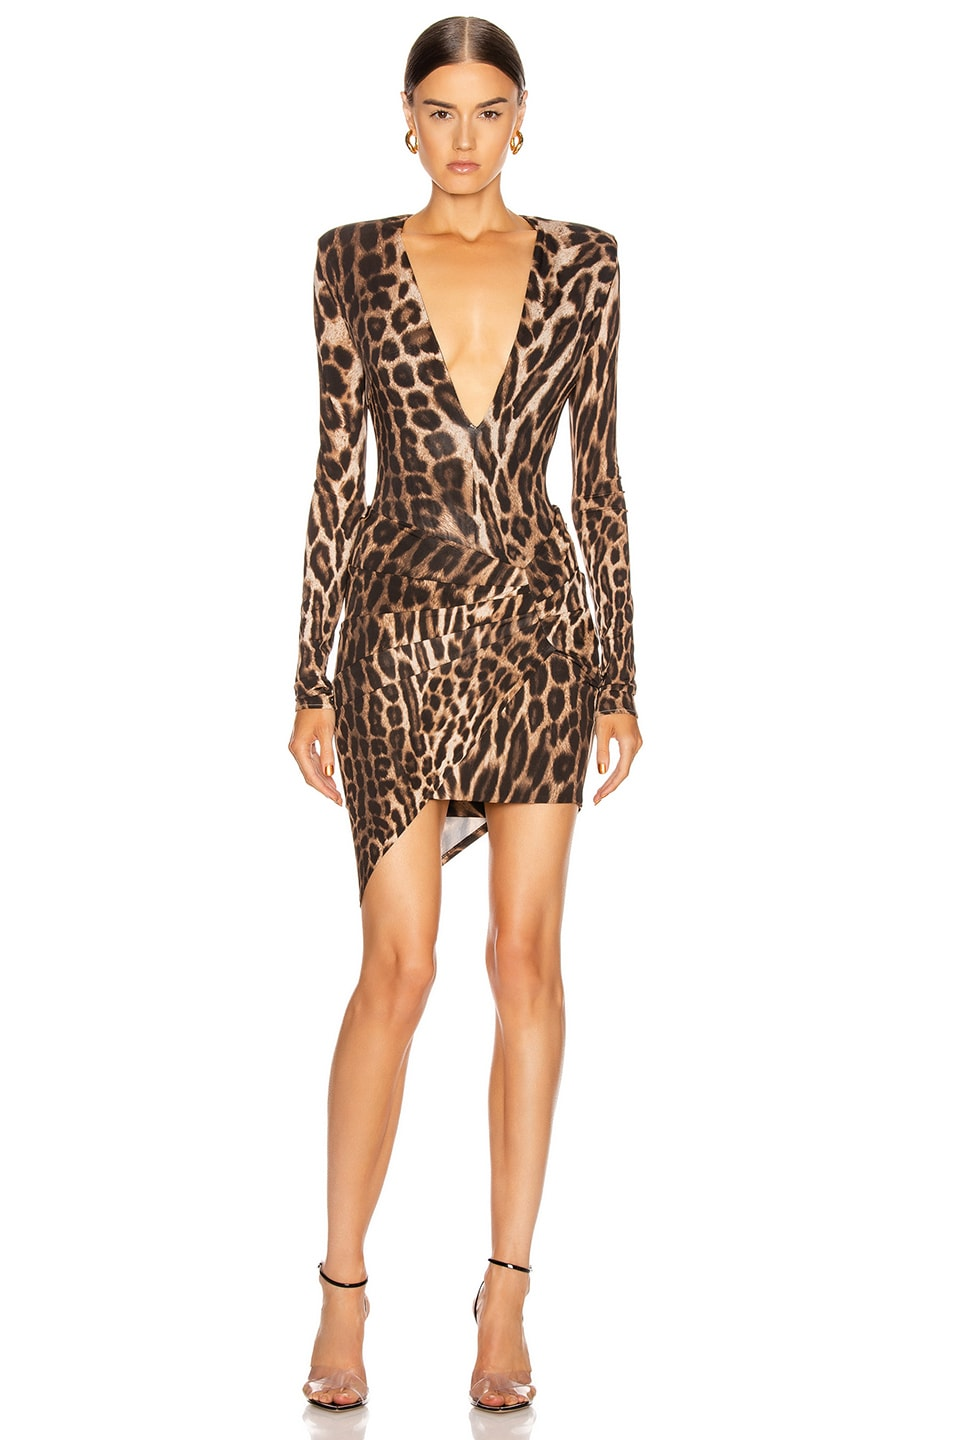 Image 5 of Alexandre Vauthier for FWRD Plunging Bodysuit in Animal